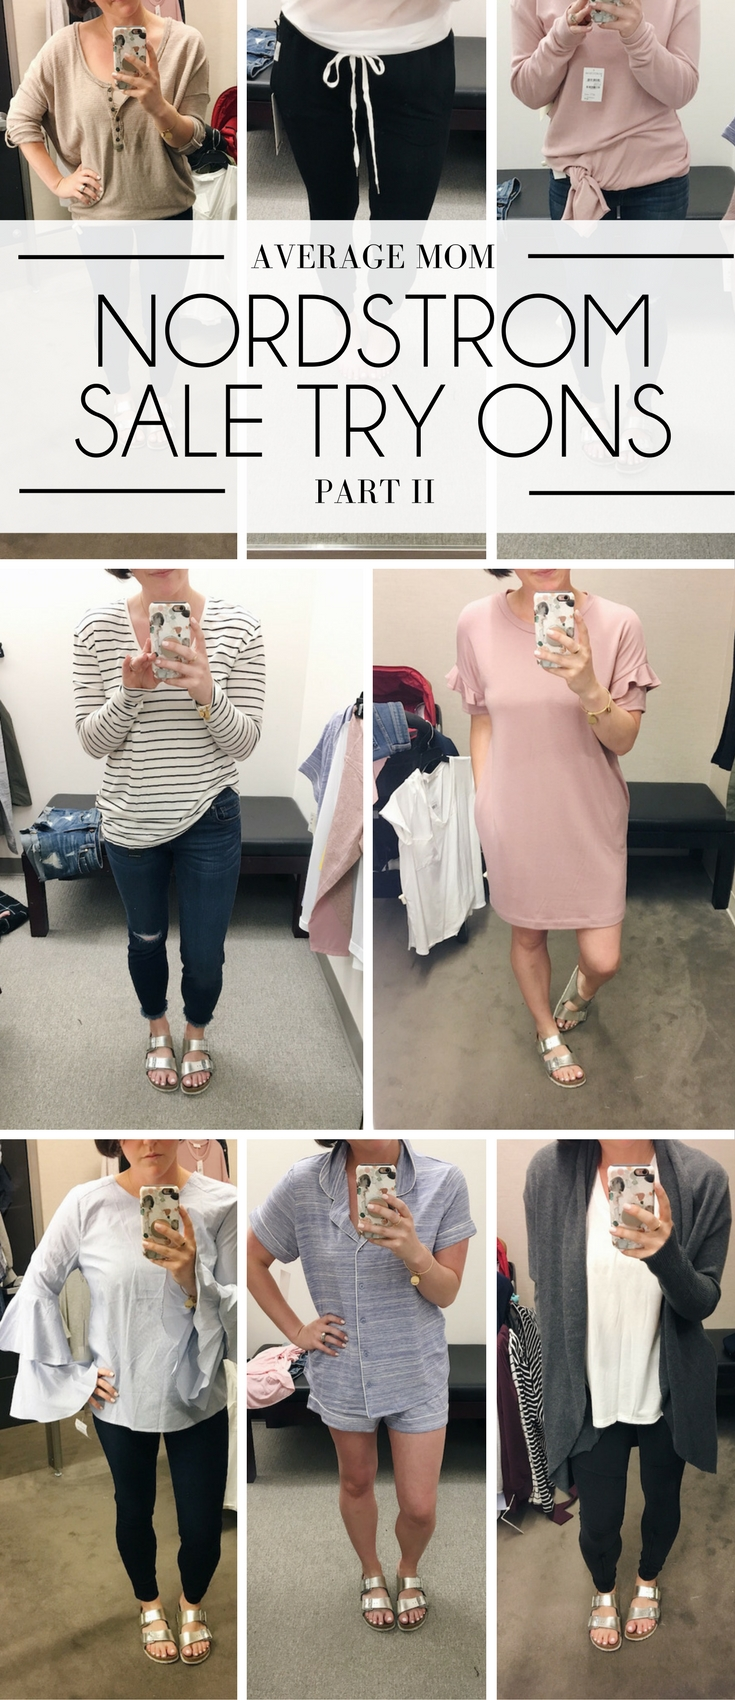 Nordstrom Anniversary Sale Dressing Room Diaries from a mom of three kids - casual, affordable style for the everyday mom - nordstrom anniversary sale for moms